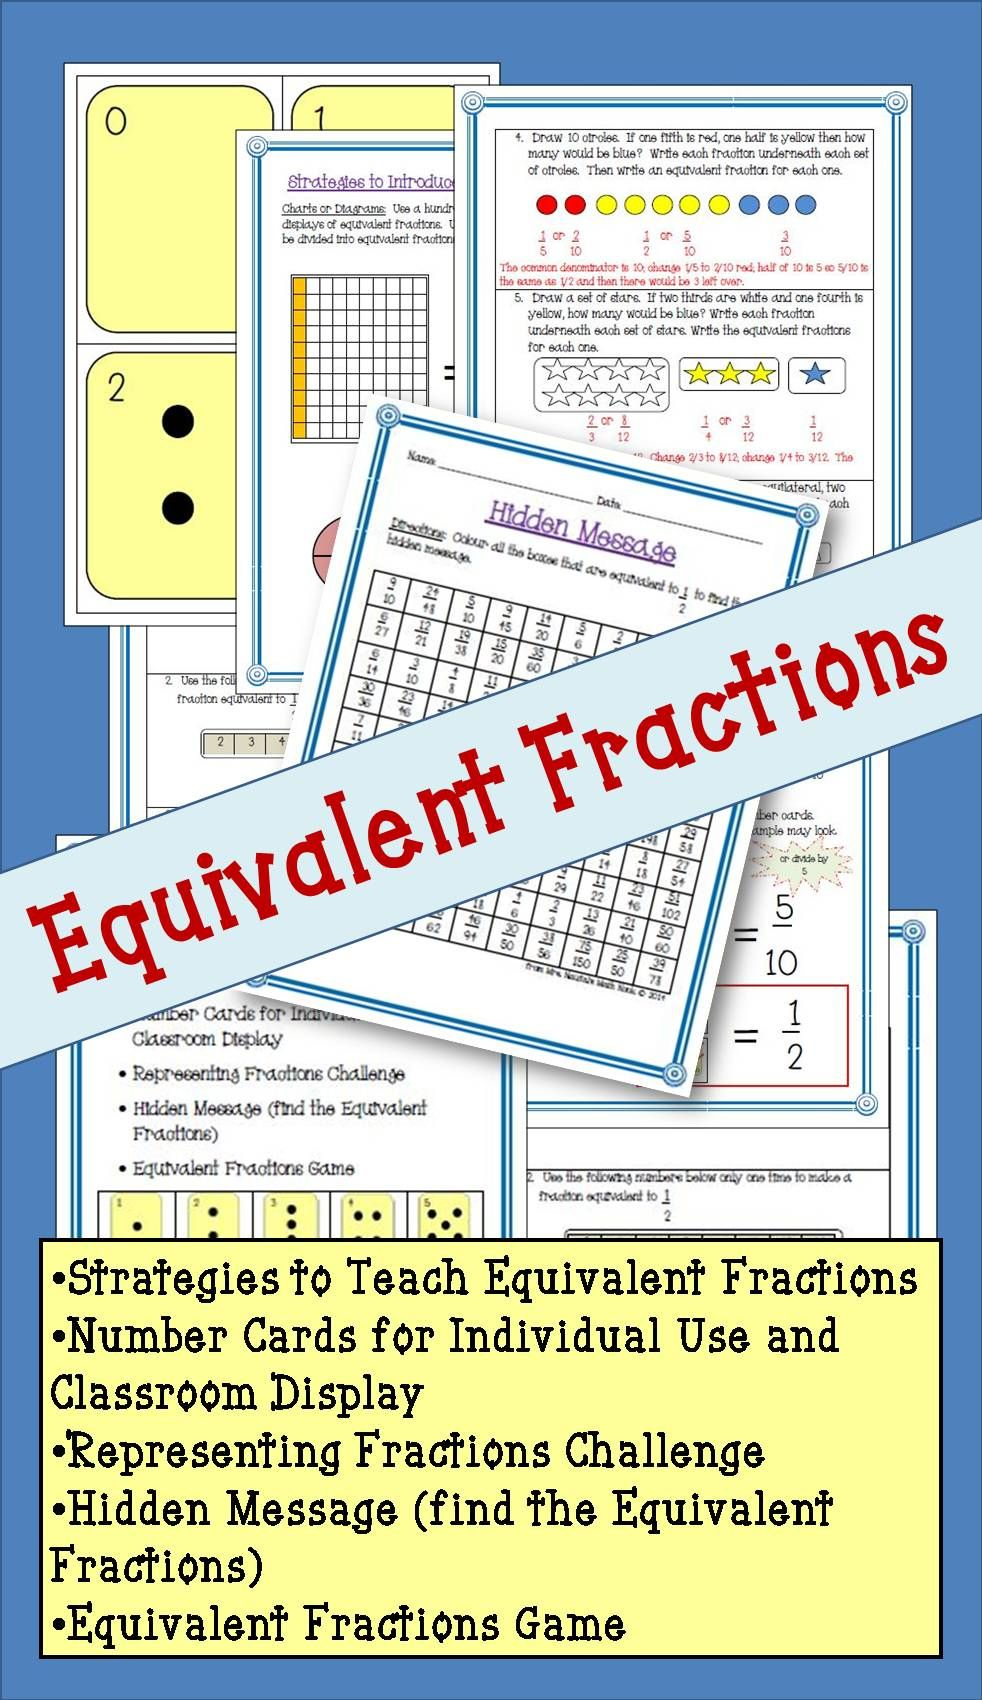 Do You Have Students That Struggle With Equivalent Fractions Try This Resource To Support Knowl Equivalent Fractions Fractions Equivalent Fractions Activities [ 1700 x 982 Pixel ]